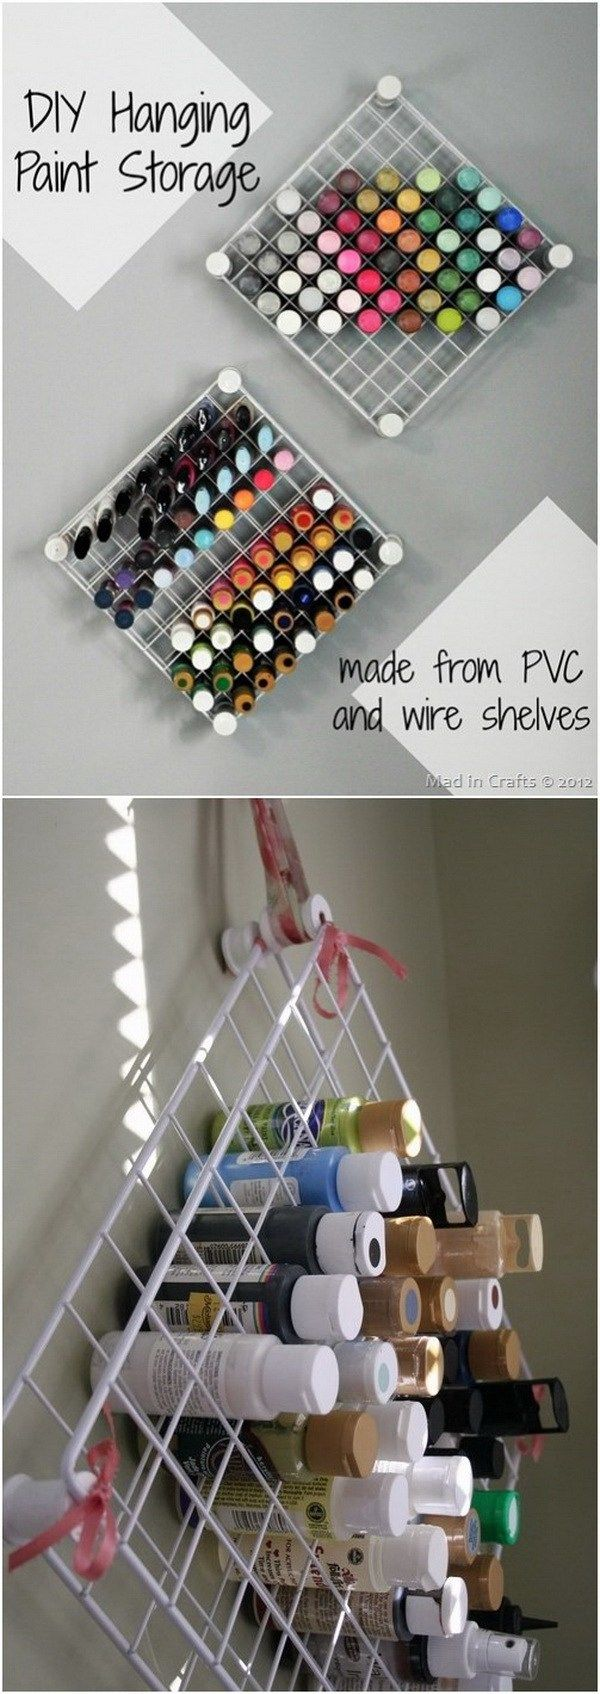 DIY PVC and Wire Shelf Hanging Paint Storage Make this clever storage system shelf from PVC and wire shelves with the openings just in the right size to neatly hold bottl...